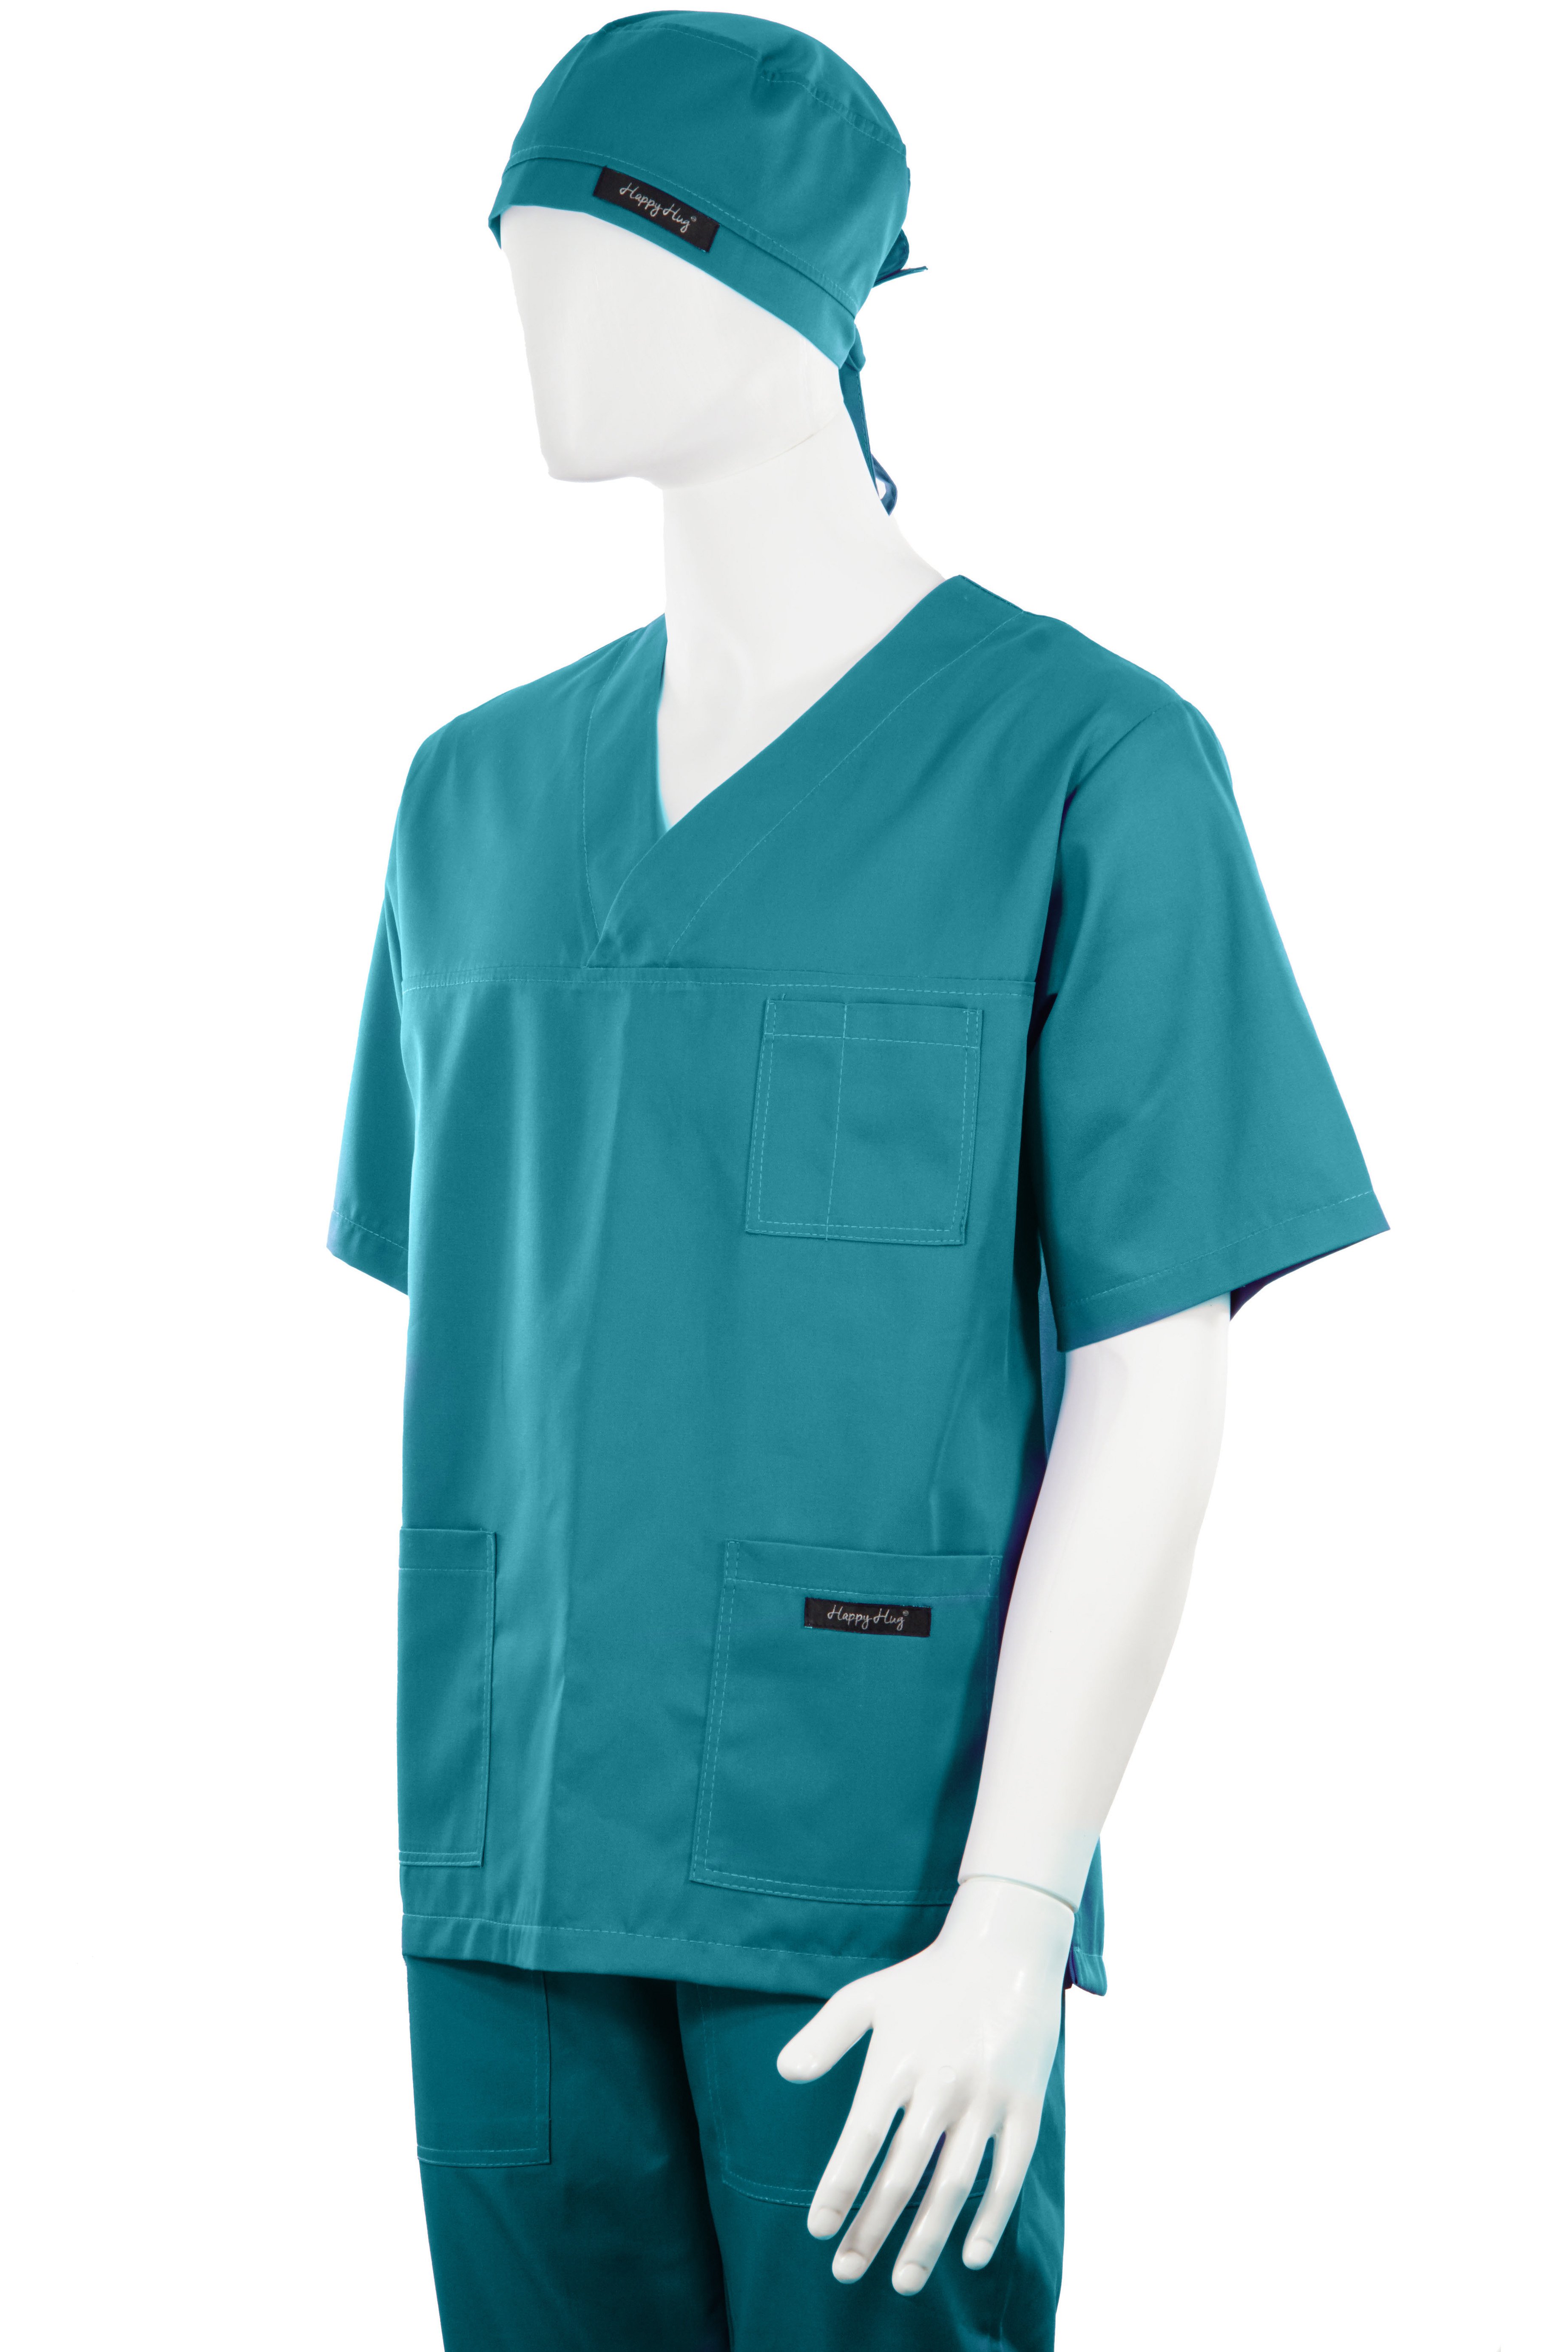 Costum Medical Unisex teal 2XL 2XL 3